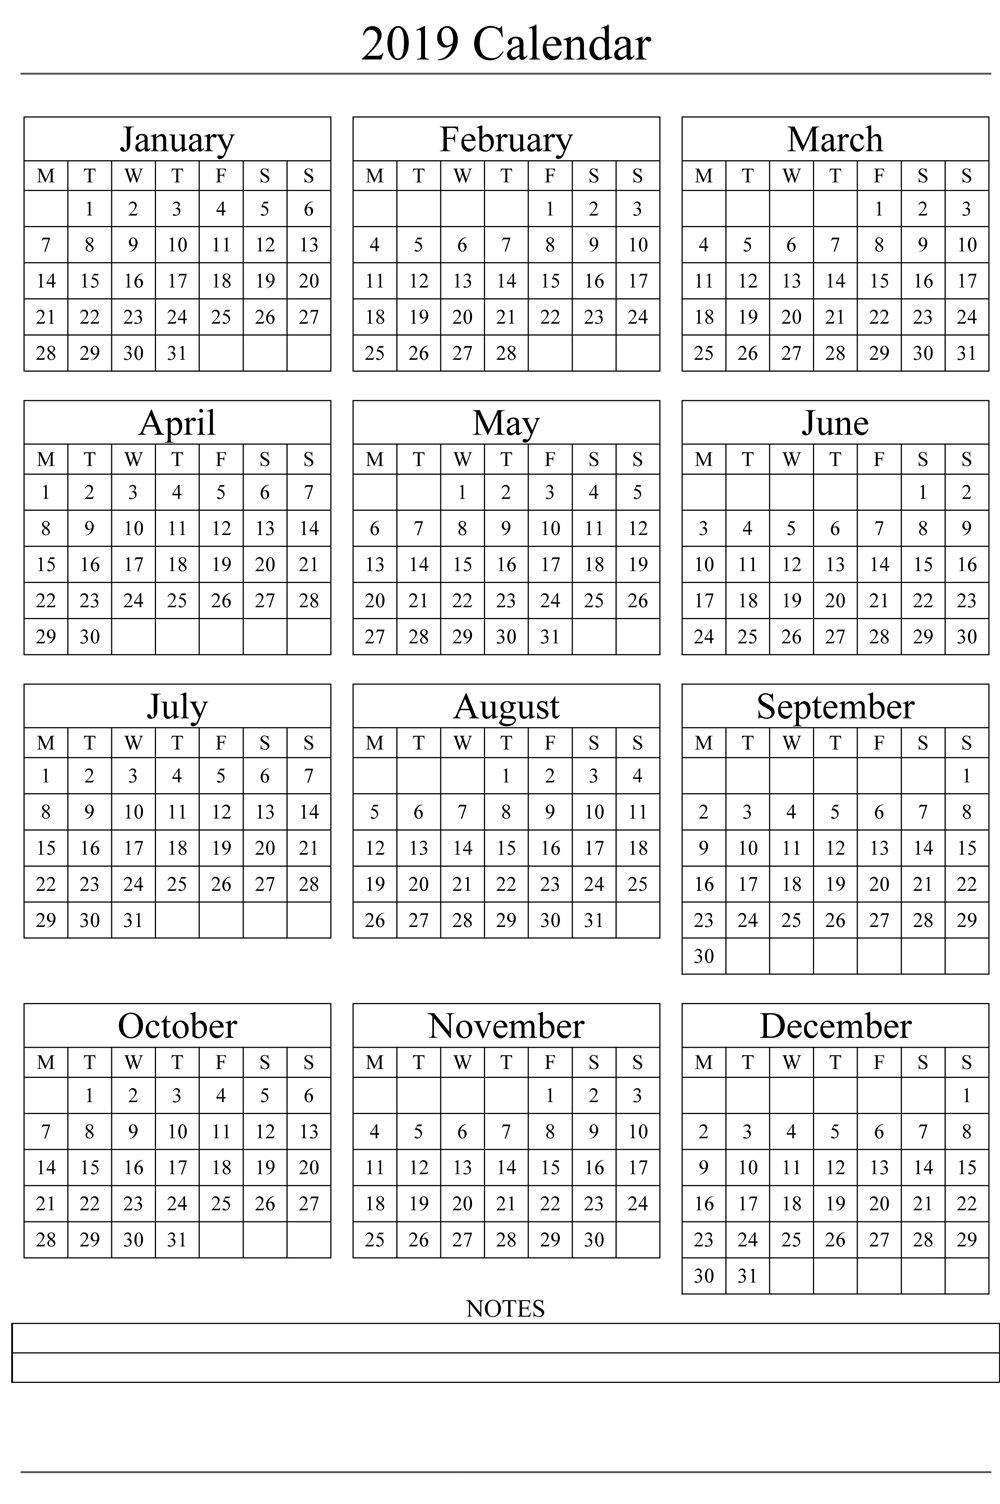 2019 One Page Calendar With Notes | Printable Yearly